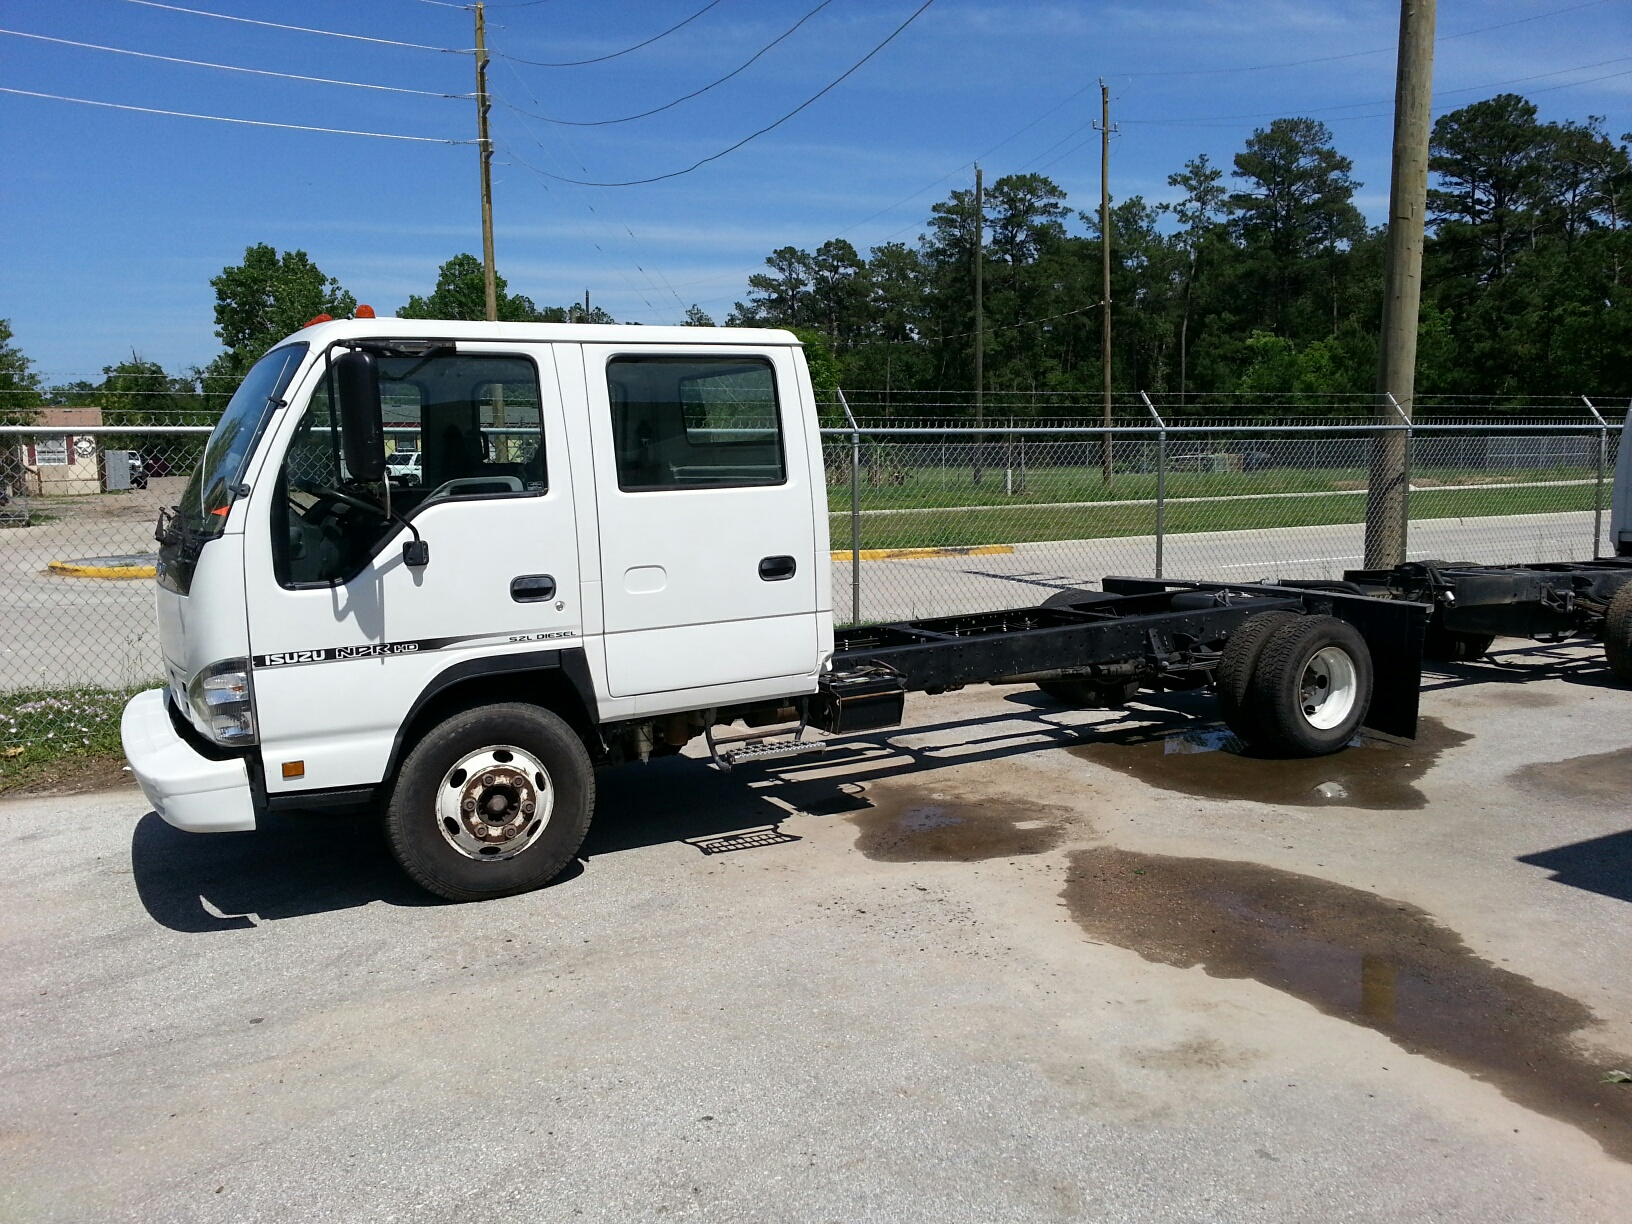 Isuzu Npr For Sale Craigslist >> Texas Truck Fleet Used Fleet Truck Sales Medium Duty Trucks